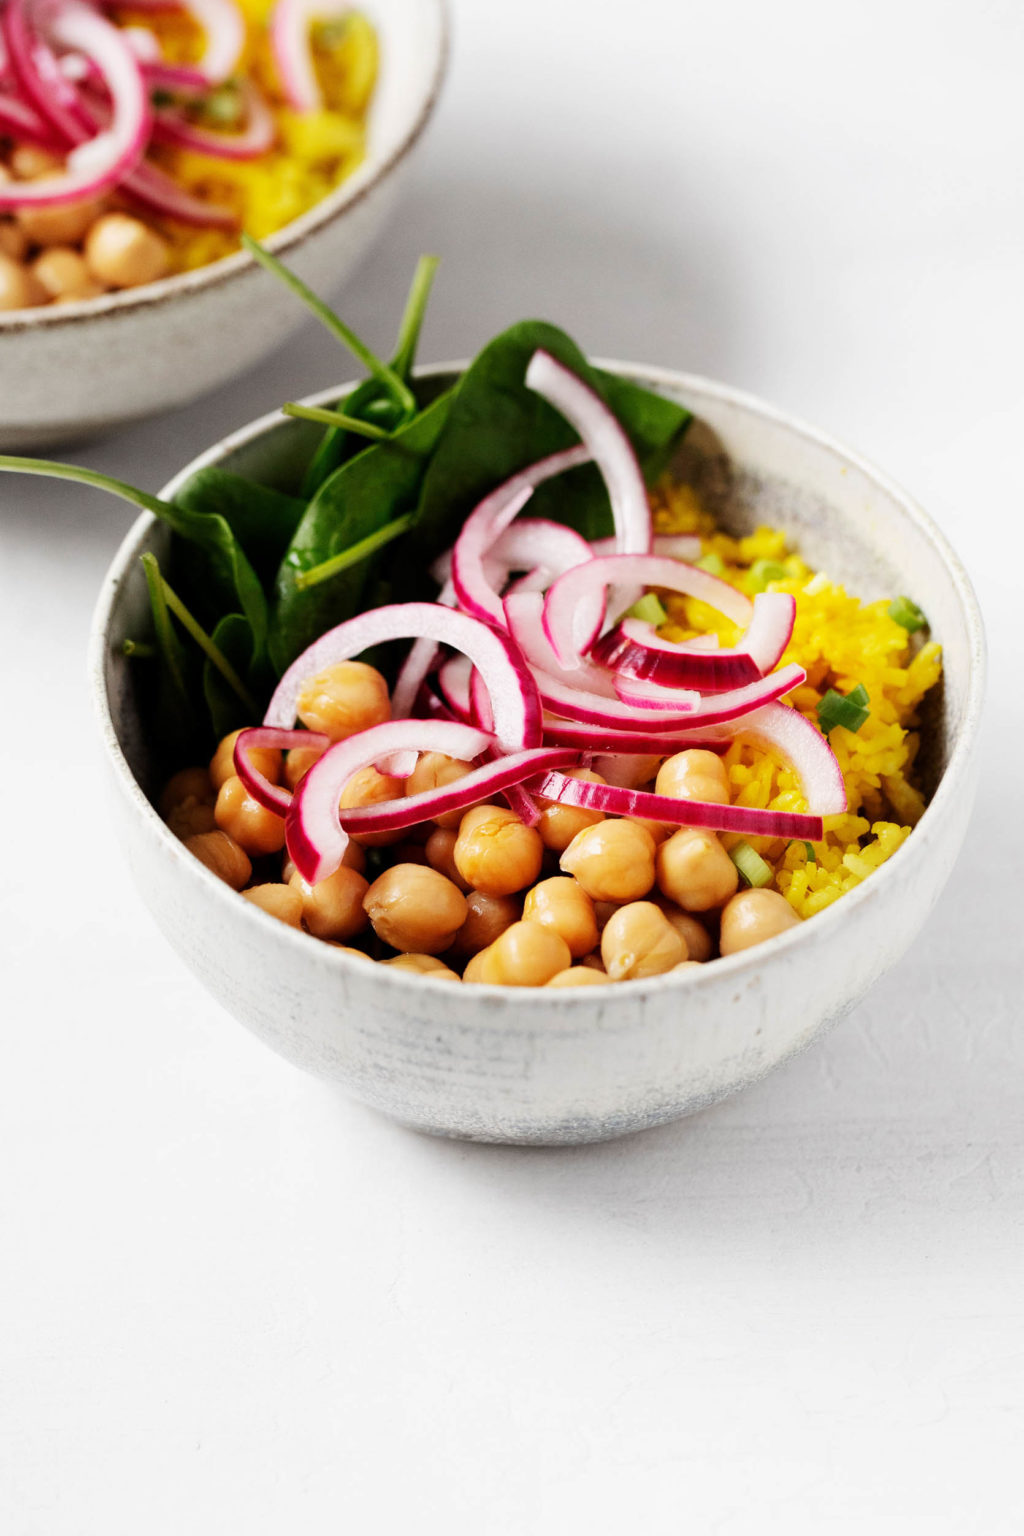 An angled photograph of two turmeric rice bowls, garnished with pink pickled onions.